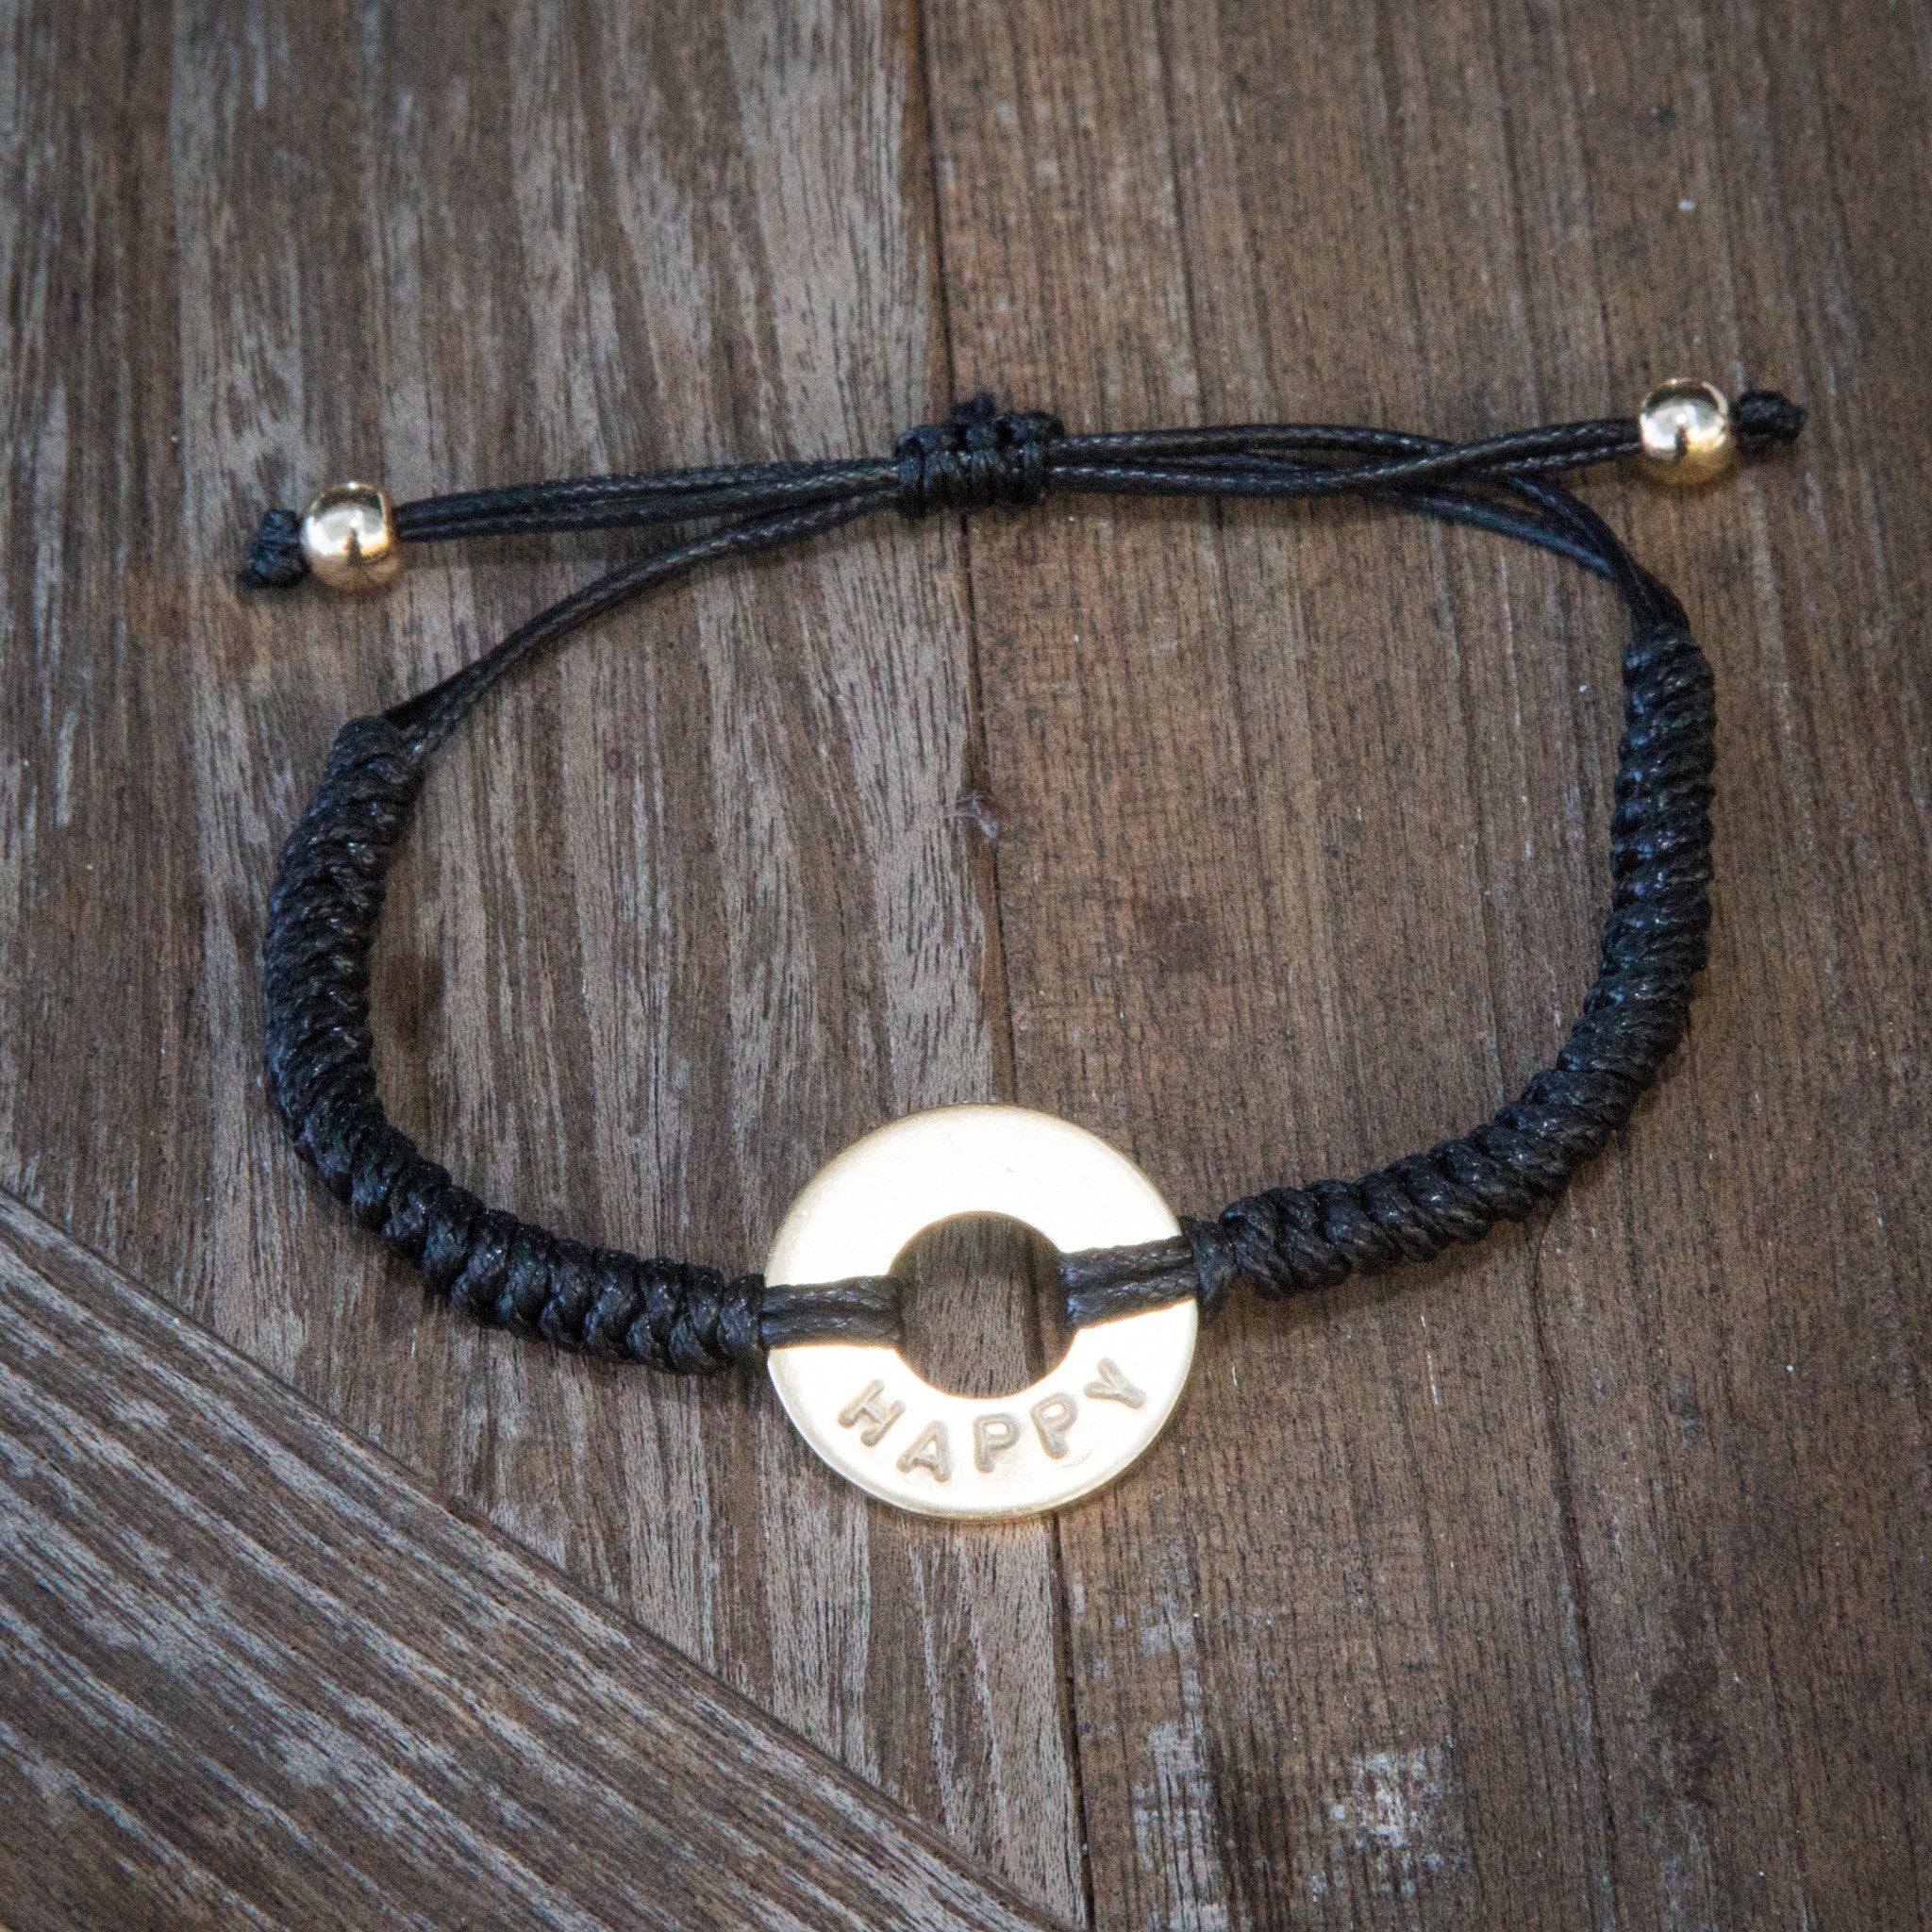 MyIntent Custom Round Bracelet Silver Token Black String and stainless steel beads with word HAPPY